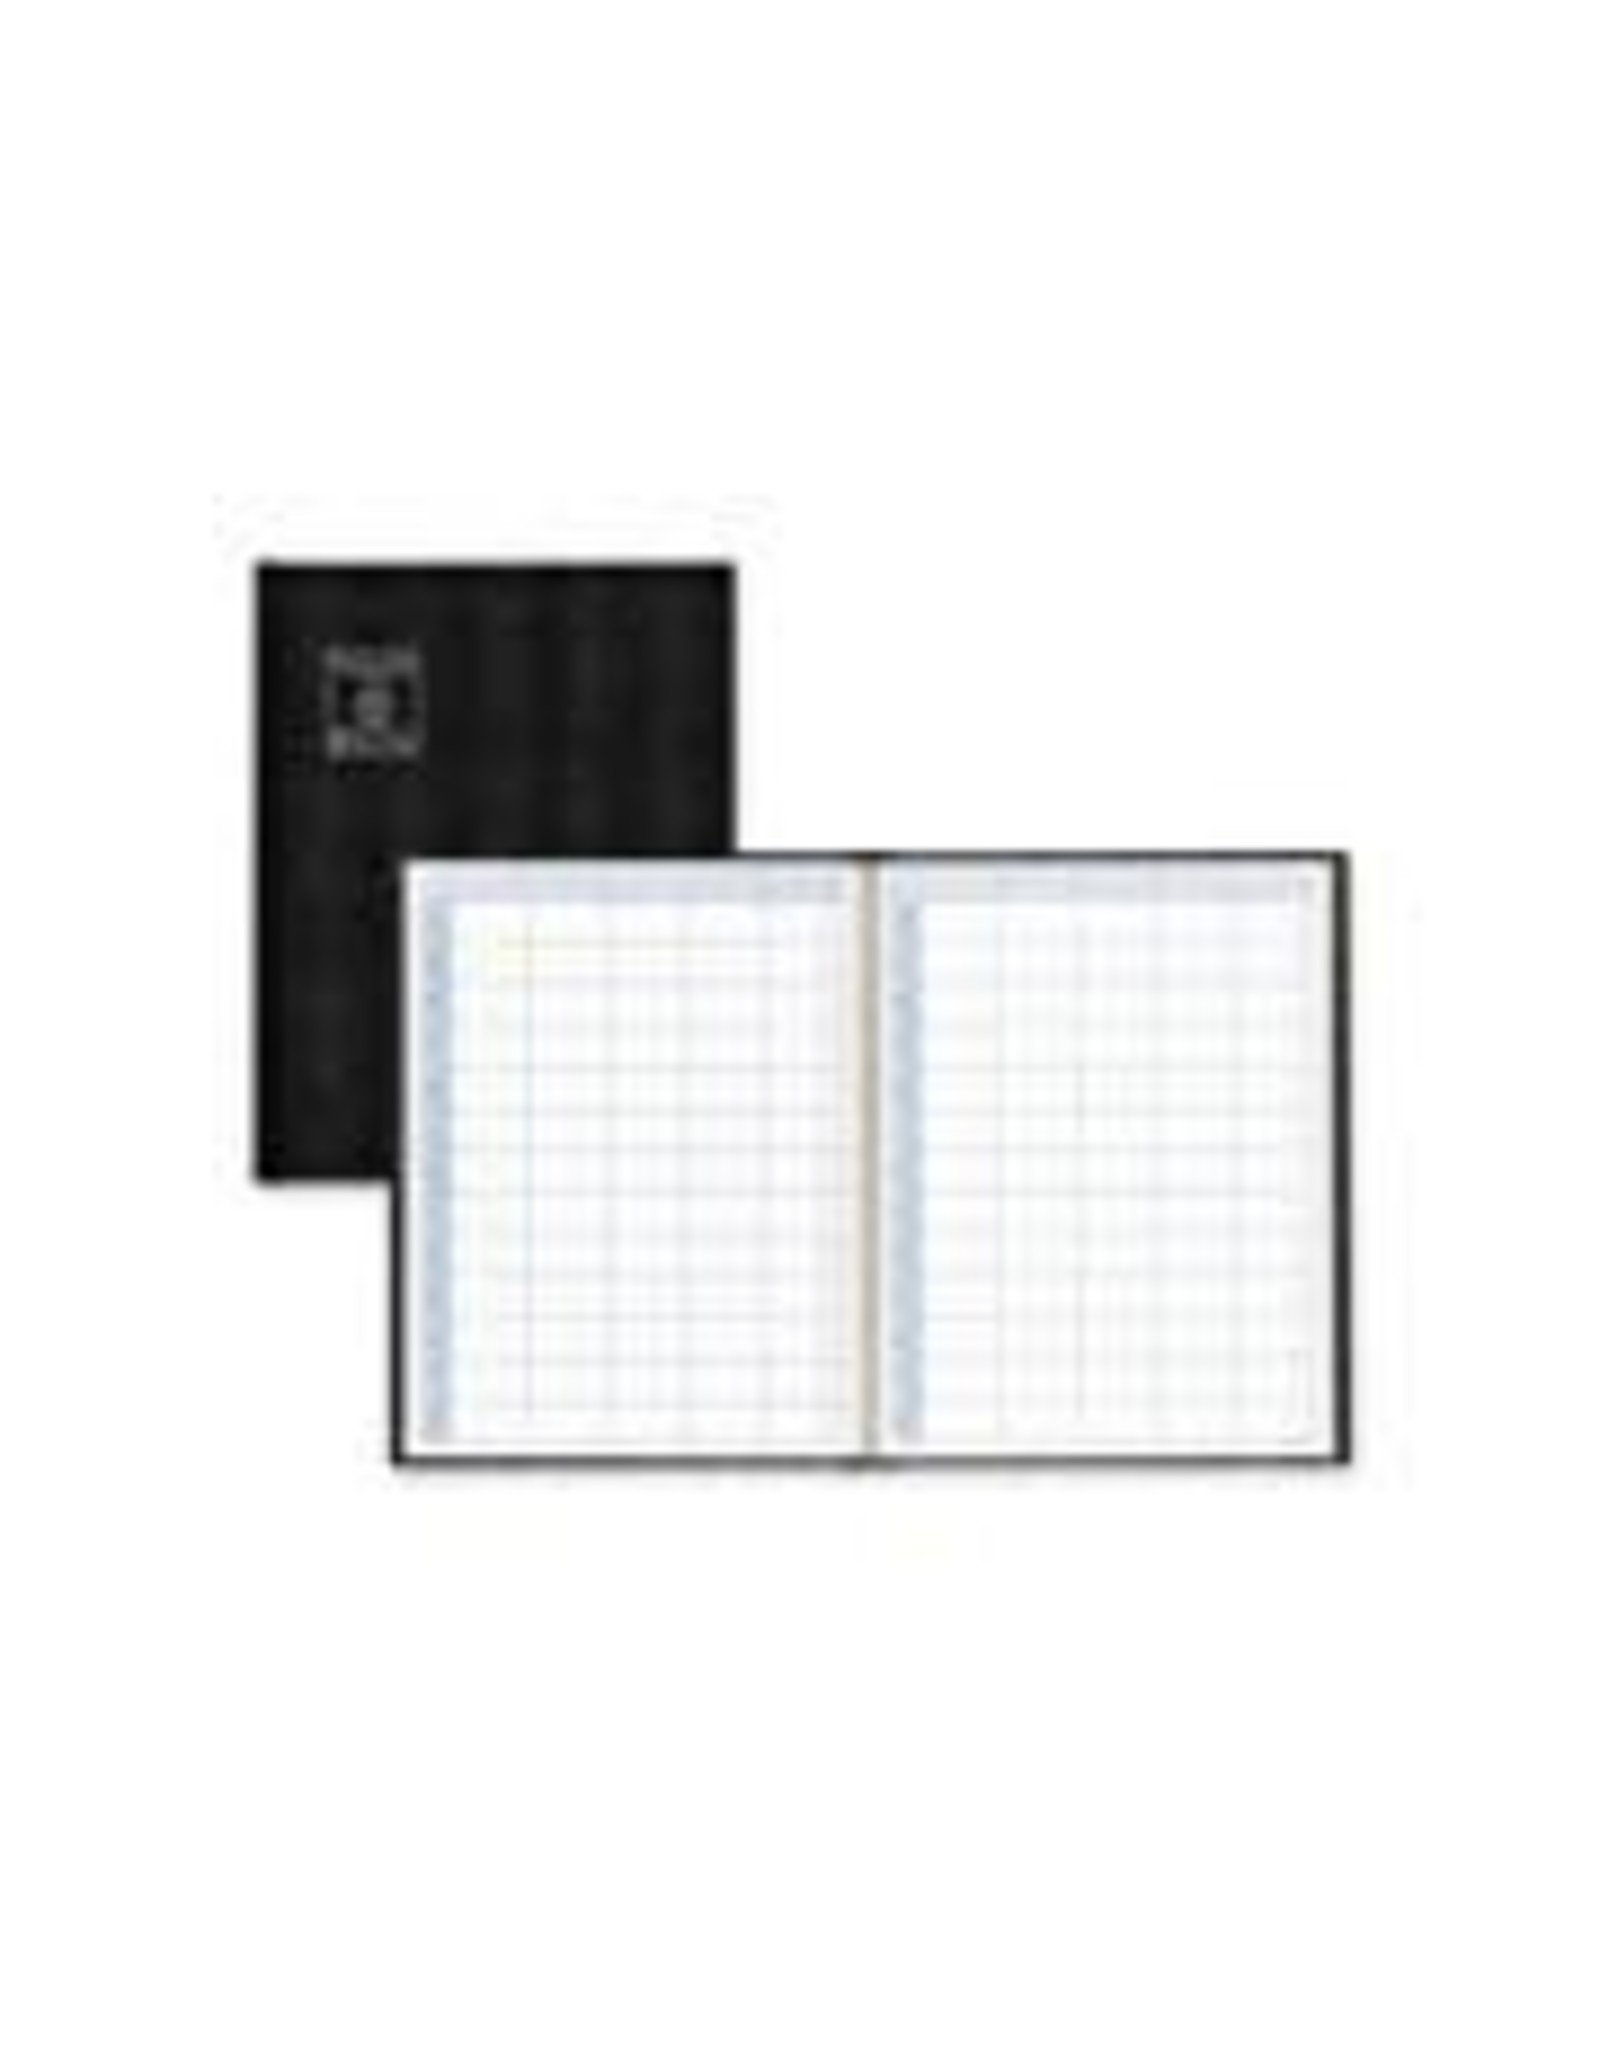 Blueline APPOINTMENT BOOK-PERPETUAL DAILY HARD 11X8.5 150 PAGE BLACK